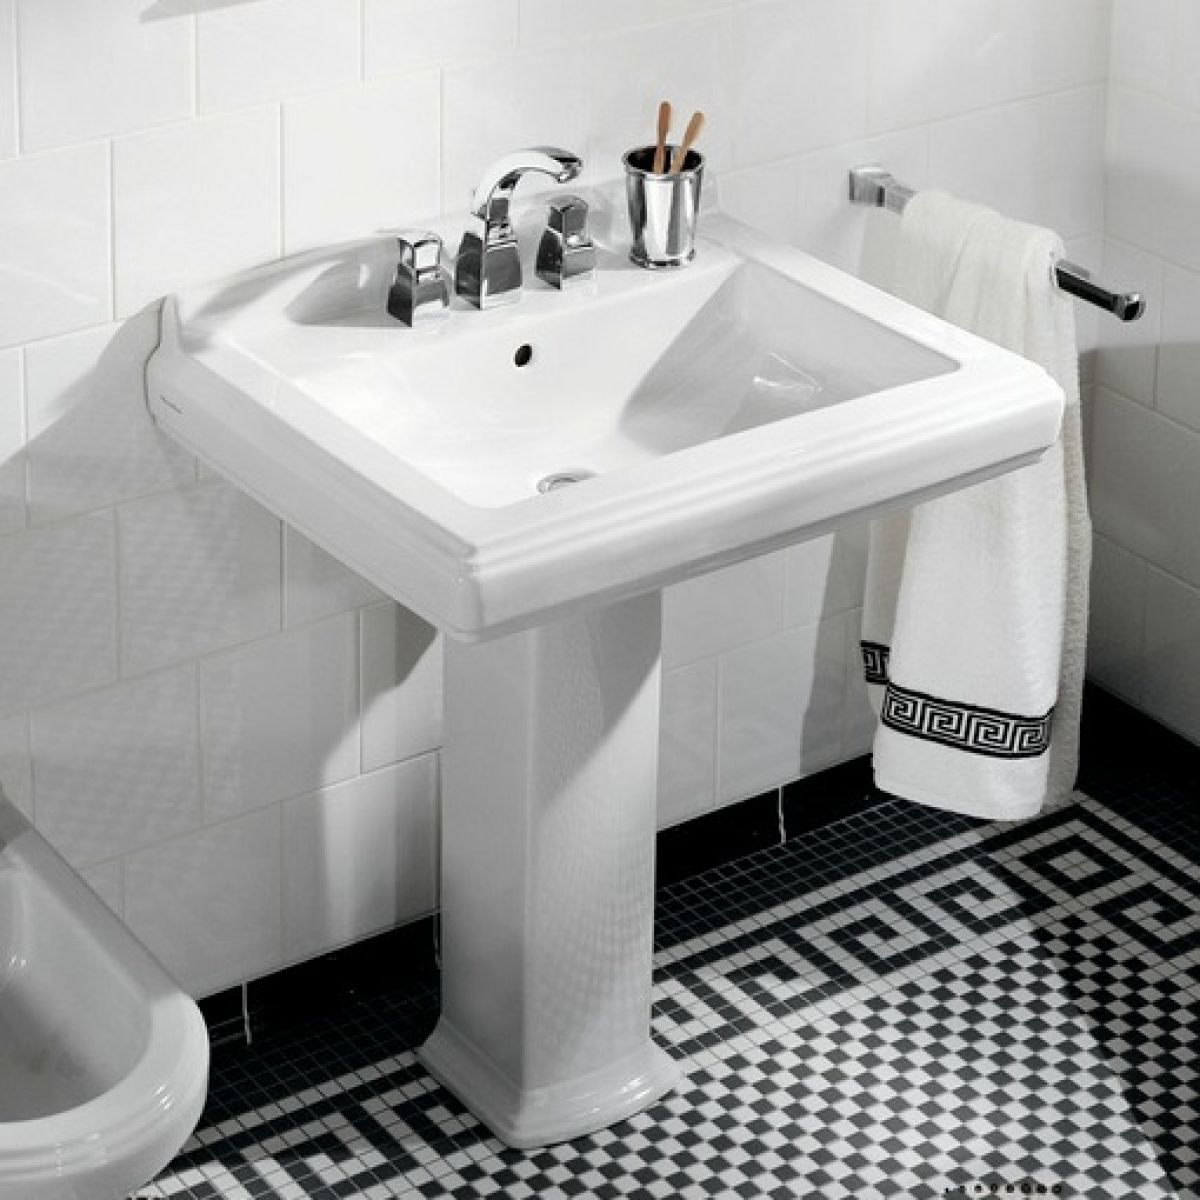 villeroy boch hommage family washbasin uk bathrooms. Black Bedroom Furniture Sets. Home Design Ideas